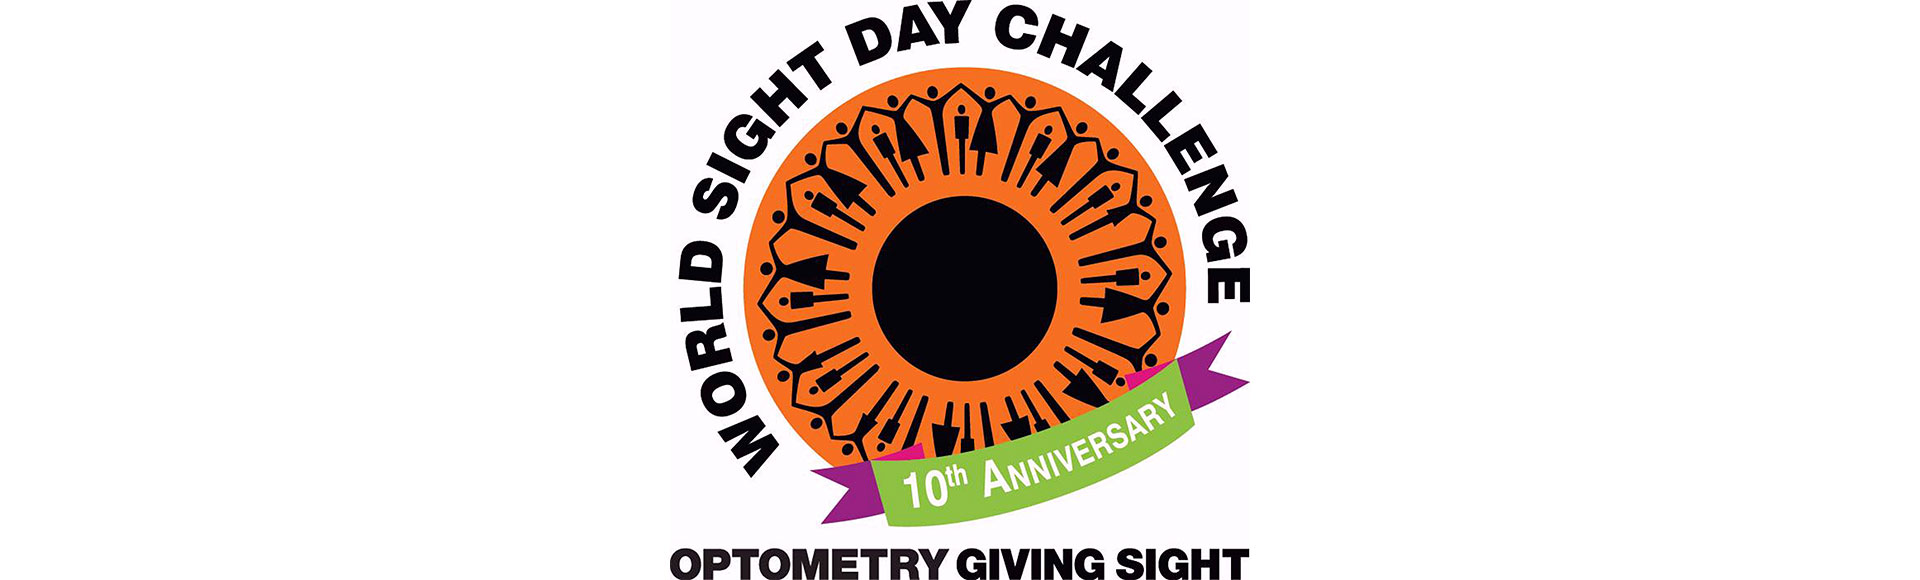 October 13th is World Sight Day